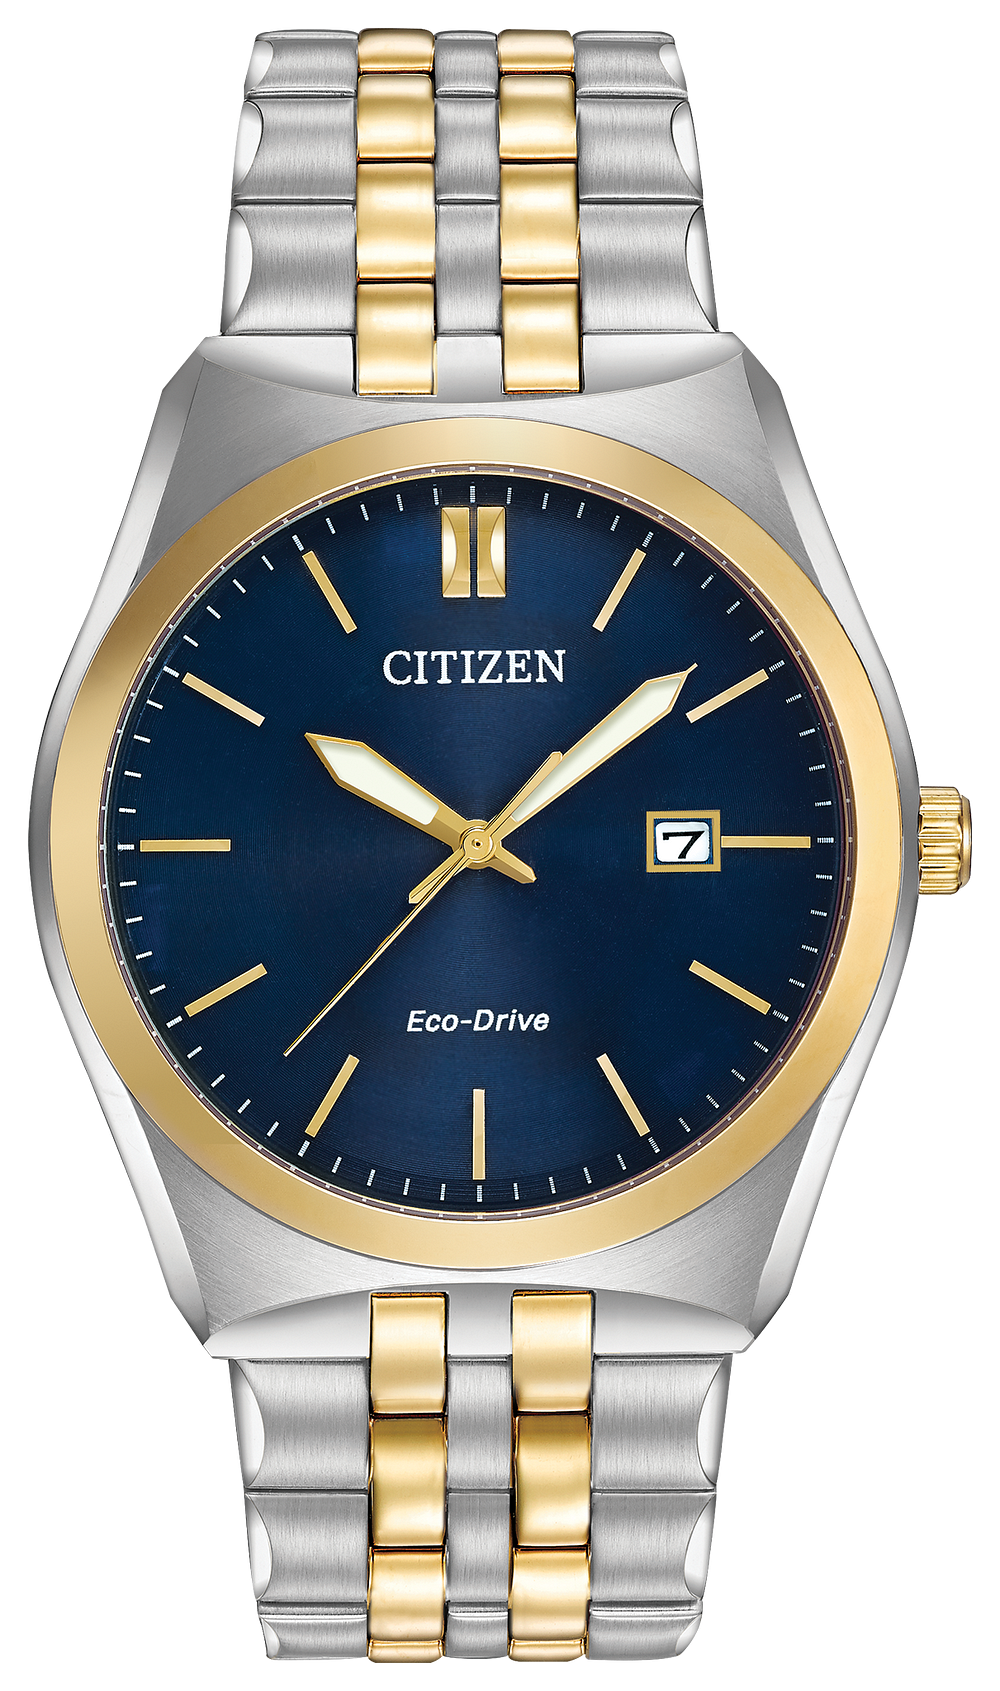 Citizen Ecodrive 2 Tone; Blue Face with Date